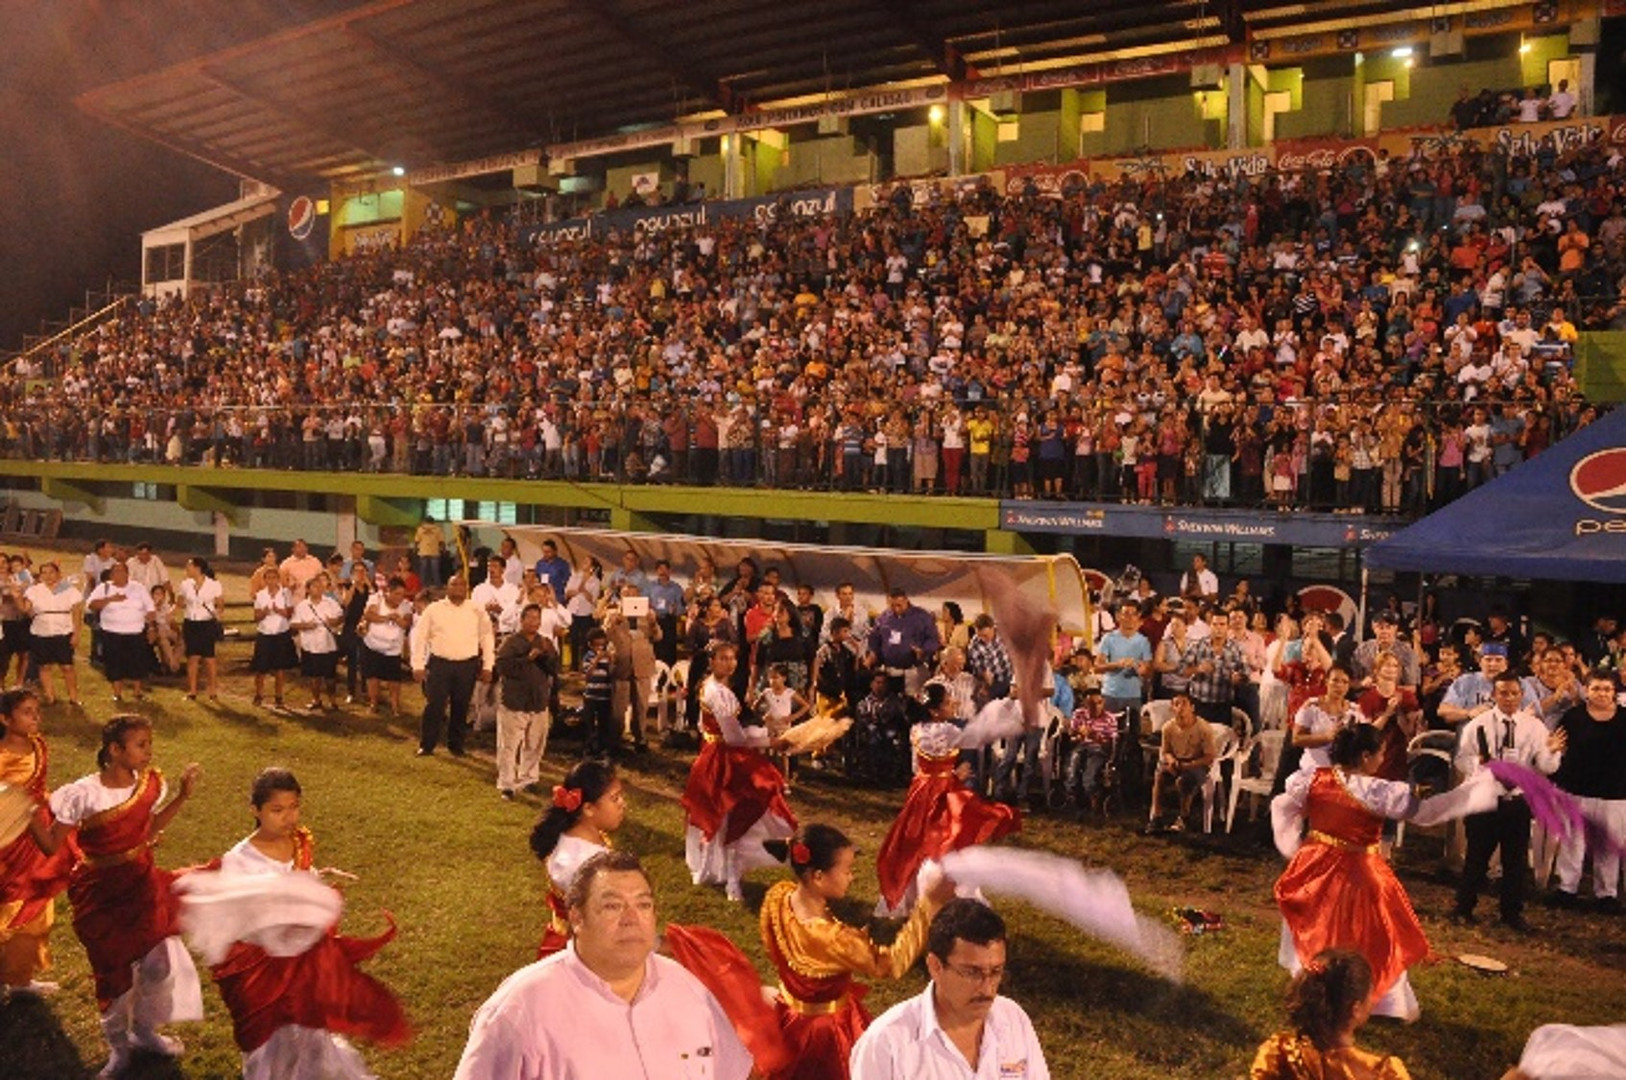 Puerto Cortes stadium and all the people who came to the crusade on the first day